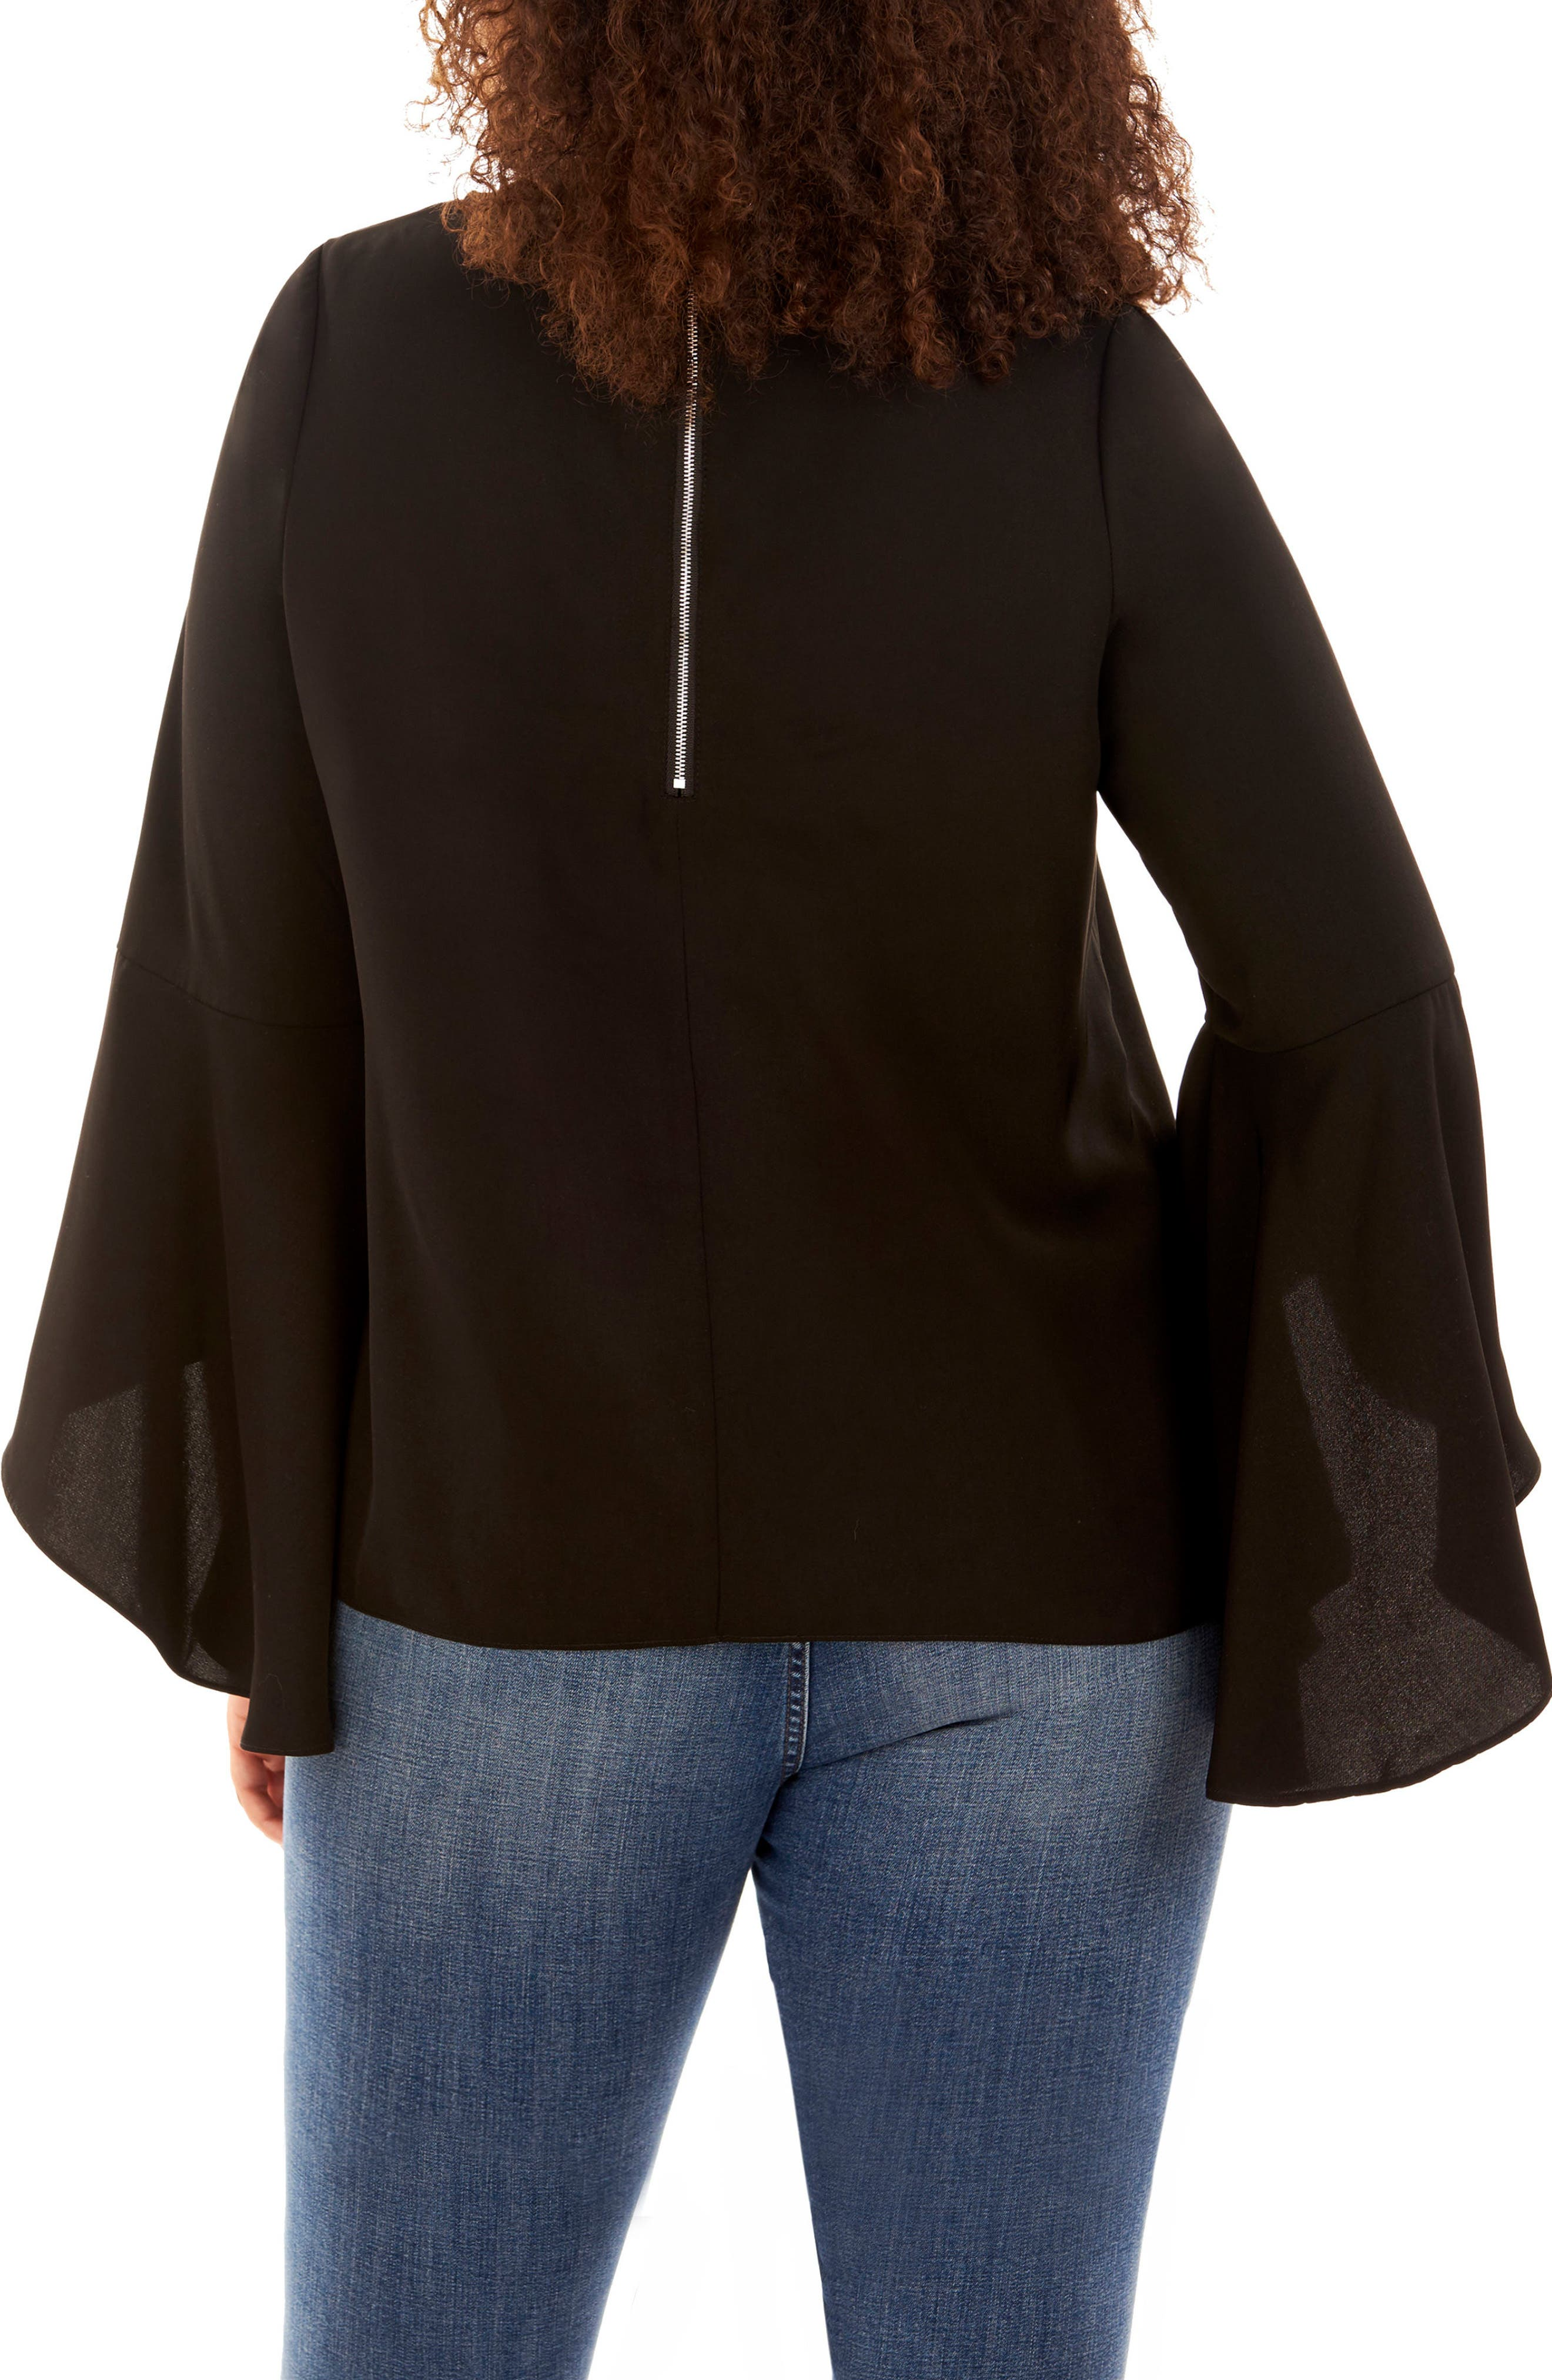 Bell Sleeve Top,                             Alternate thumbnail 2, color,                             002